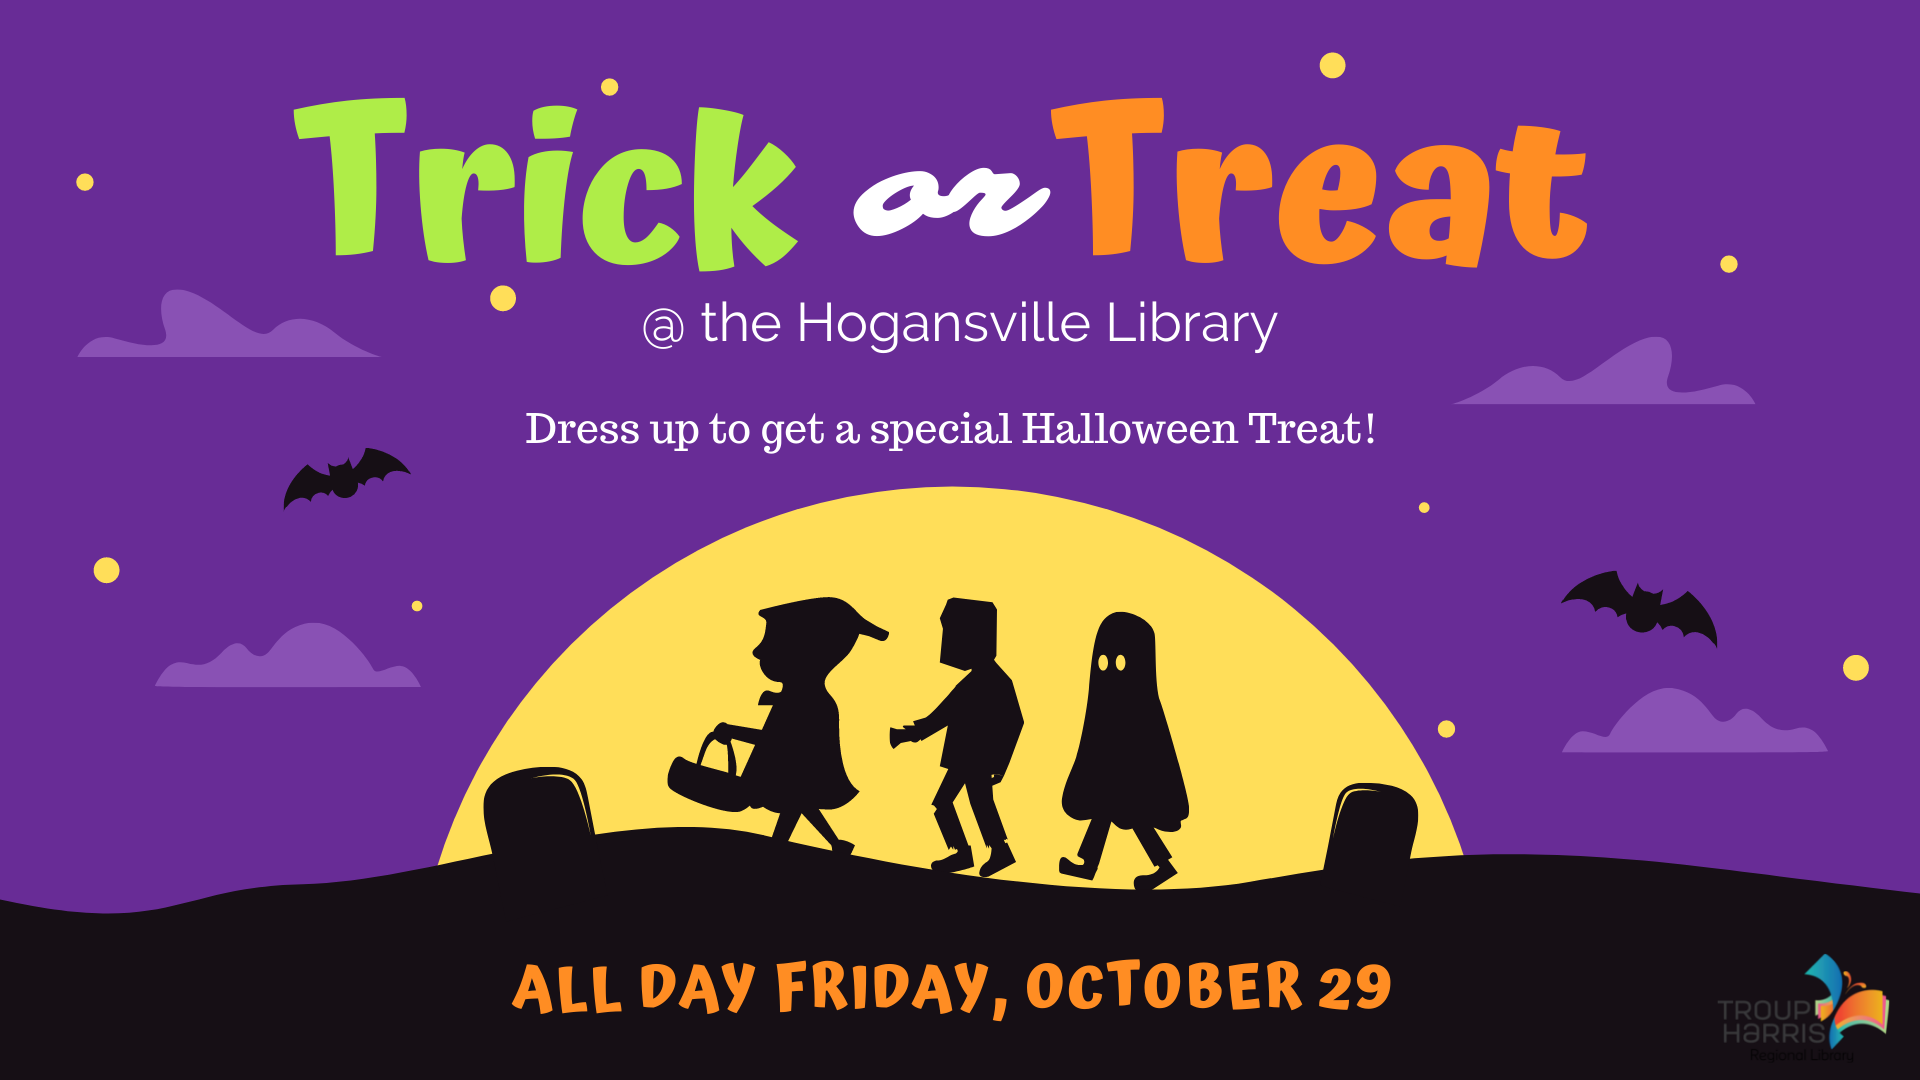 This is no trick - we'll have a special treat to give out when you stop by the Hogansville Library any time on Friday, October 29! Available while supplies last. No library card or registration required.